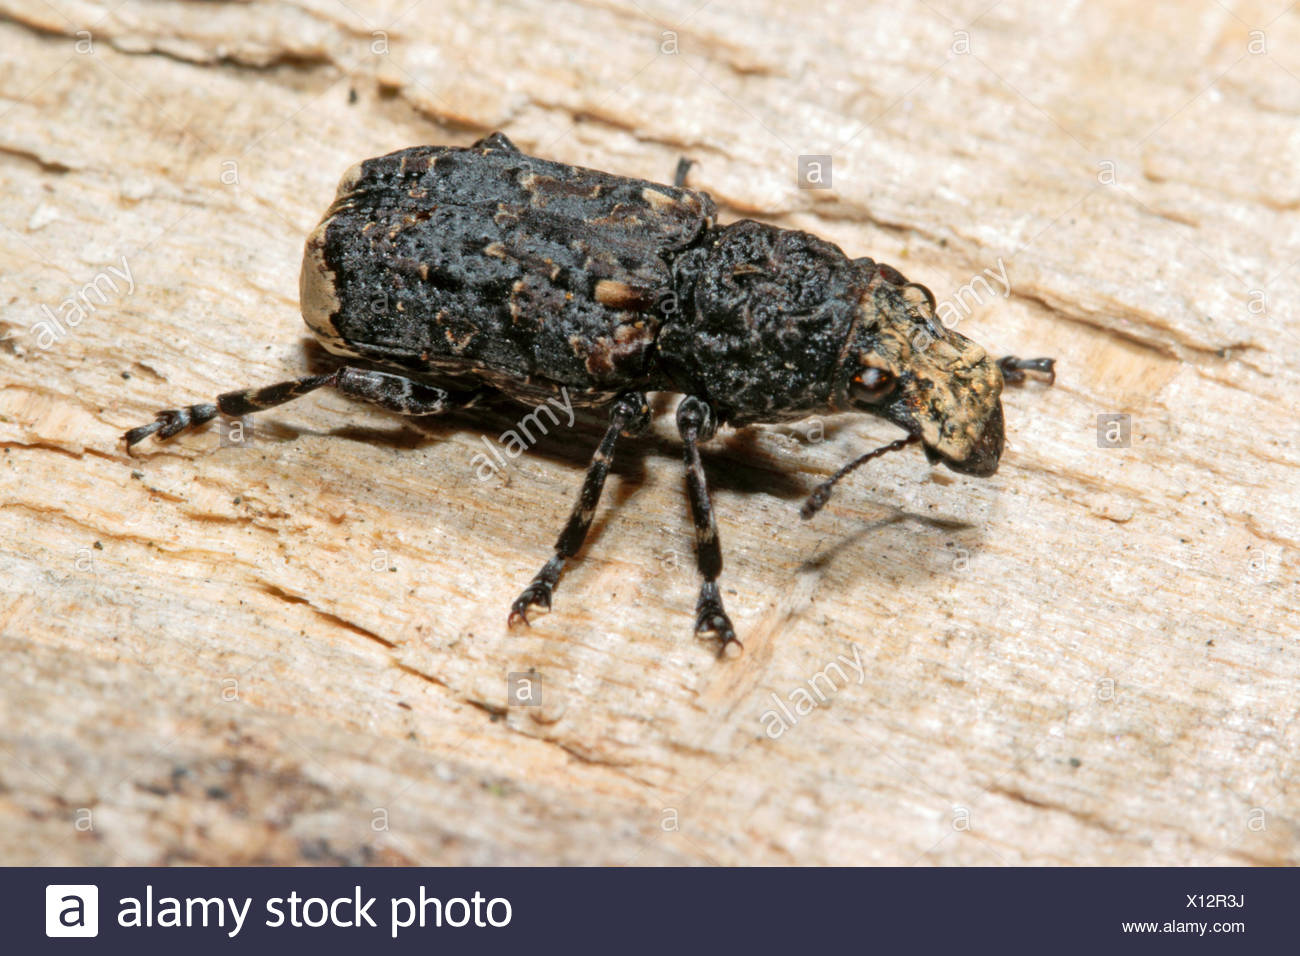 Fungus Beetle Stock Photos Amp Fungus Beetle Stock Images